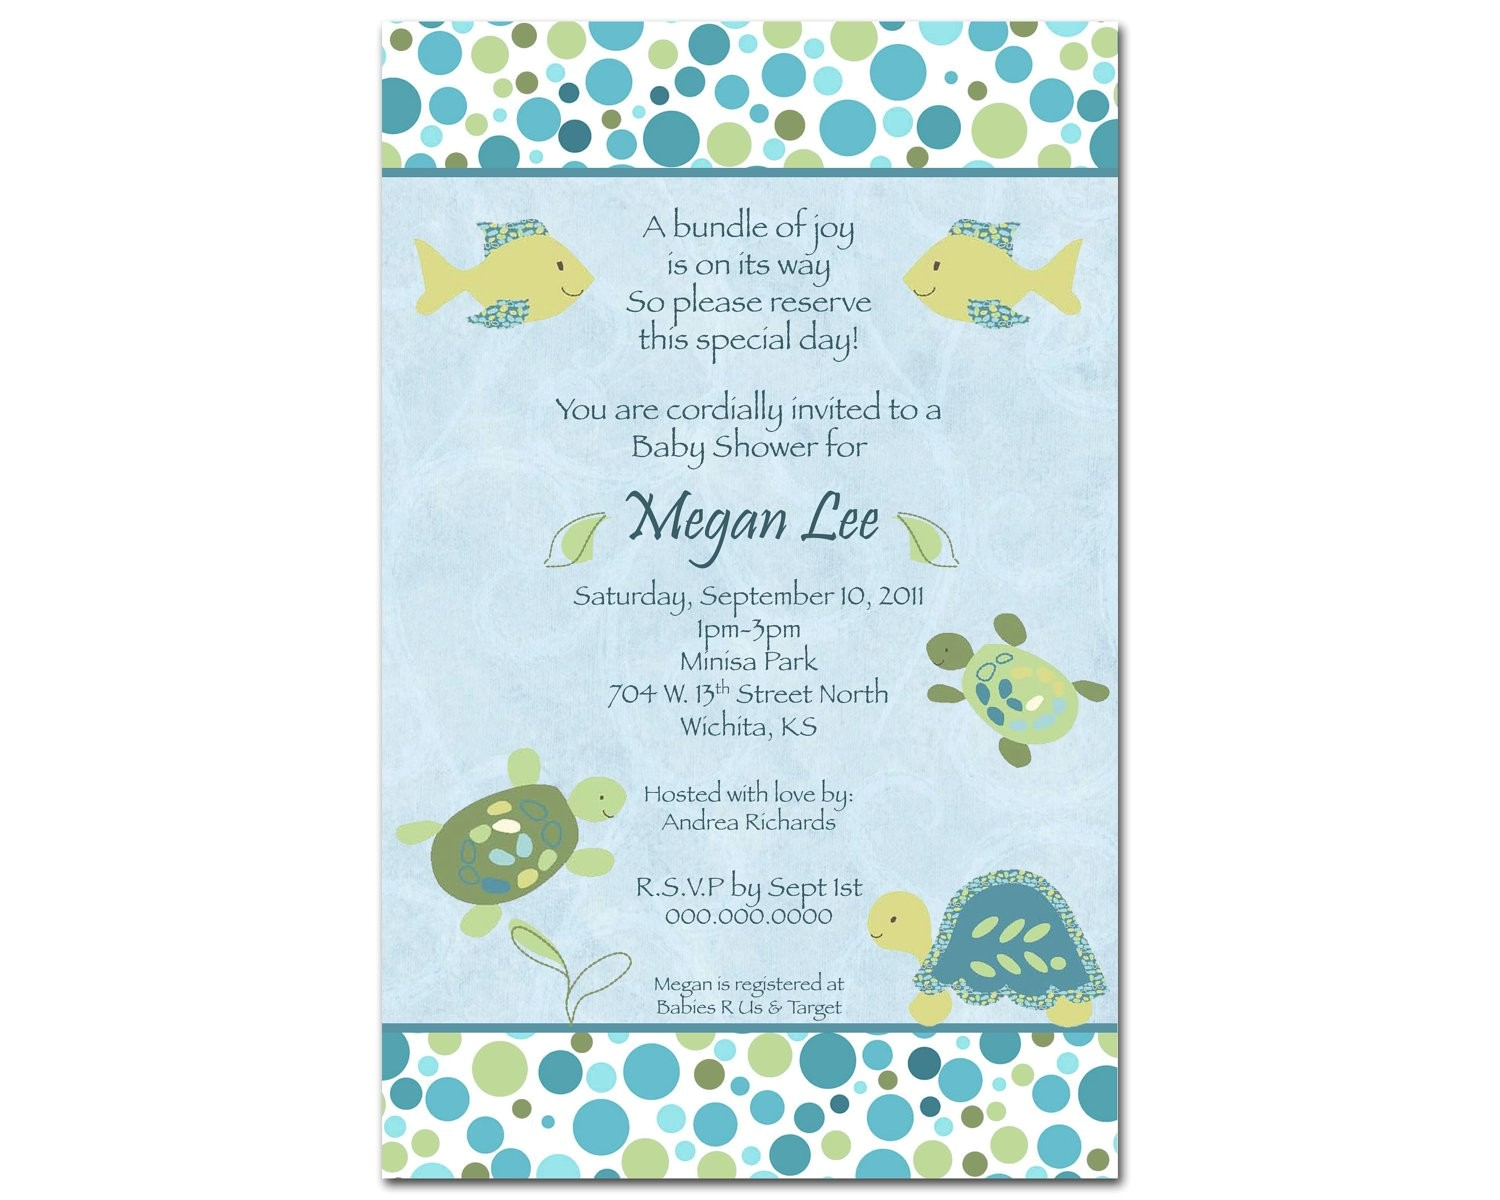 office wedding shower invitation